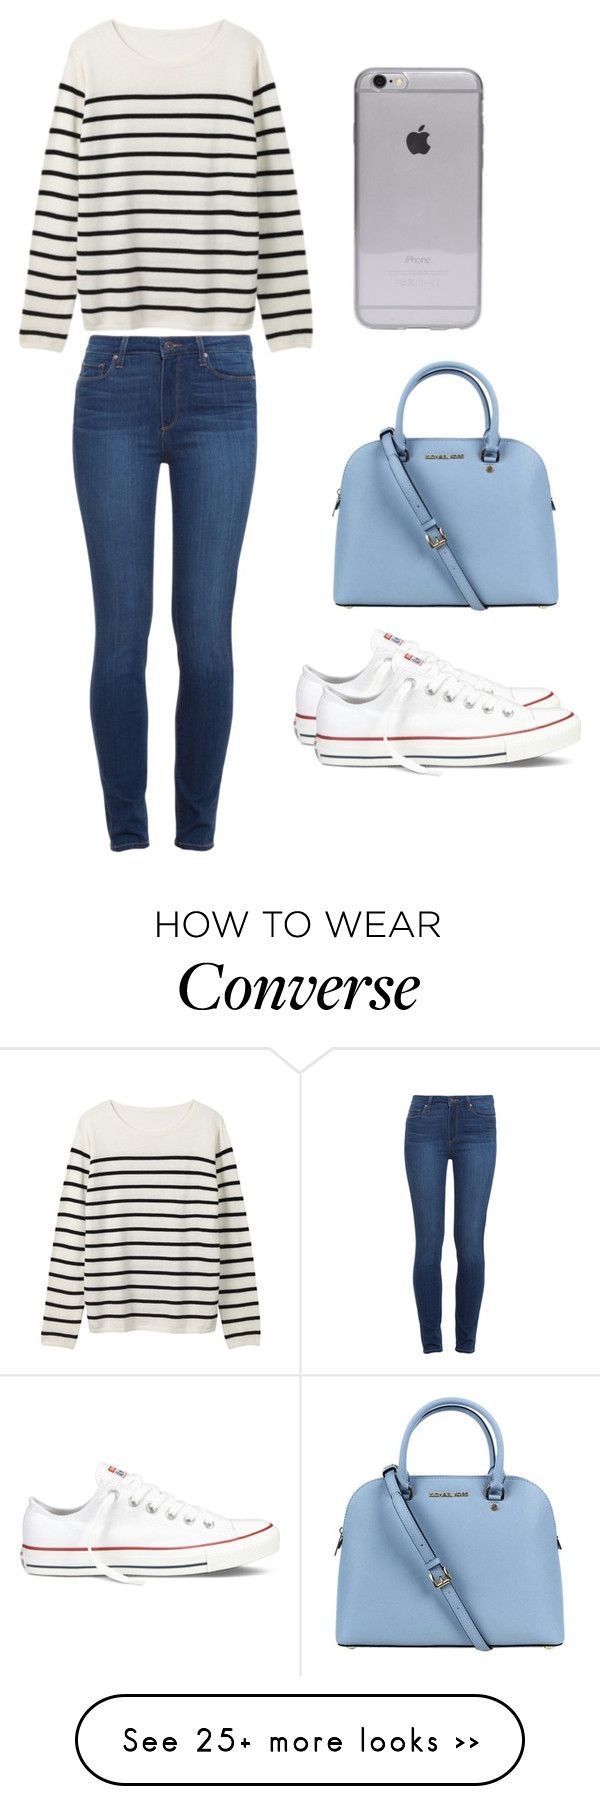 """Preppy #1"" by miss-cupcake-girl1 on Polyvore featuring Mode, Paige Denim, Converse und Michael Kors"